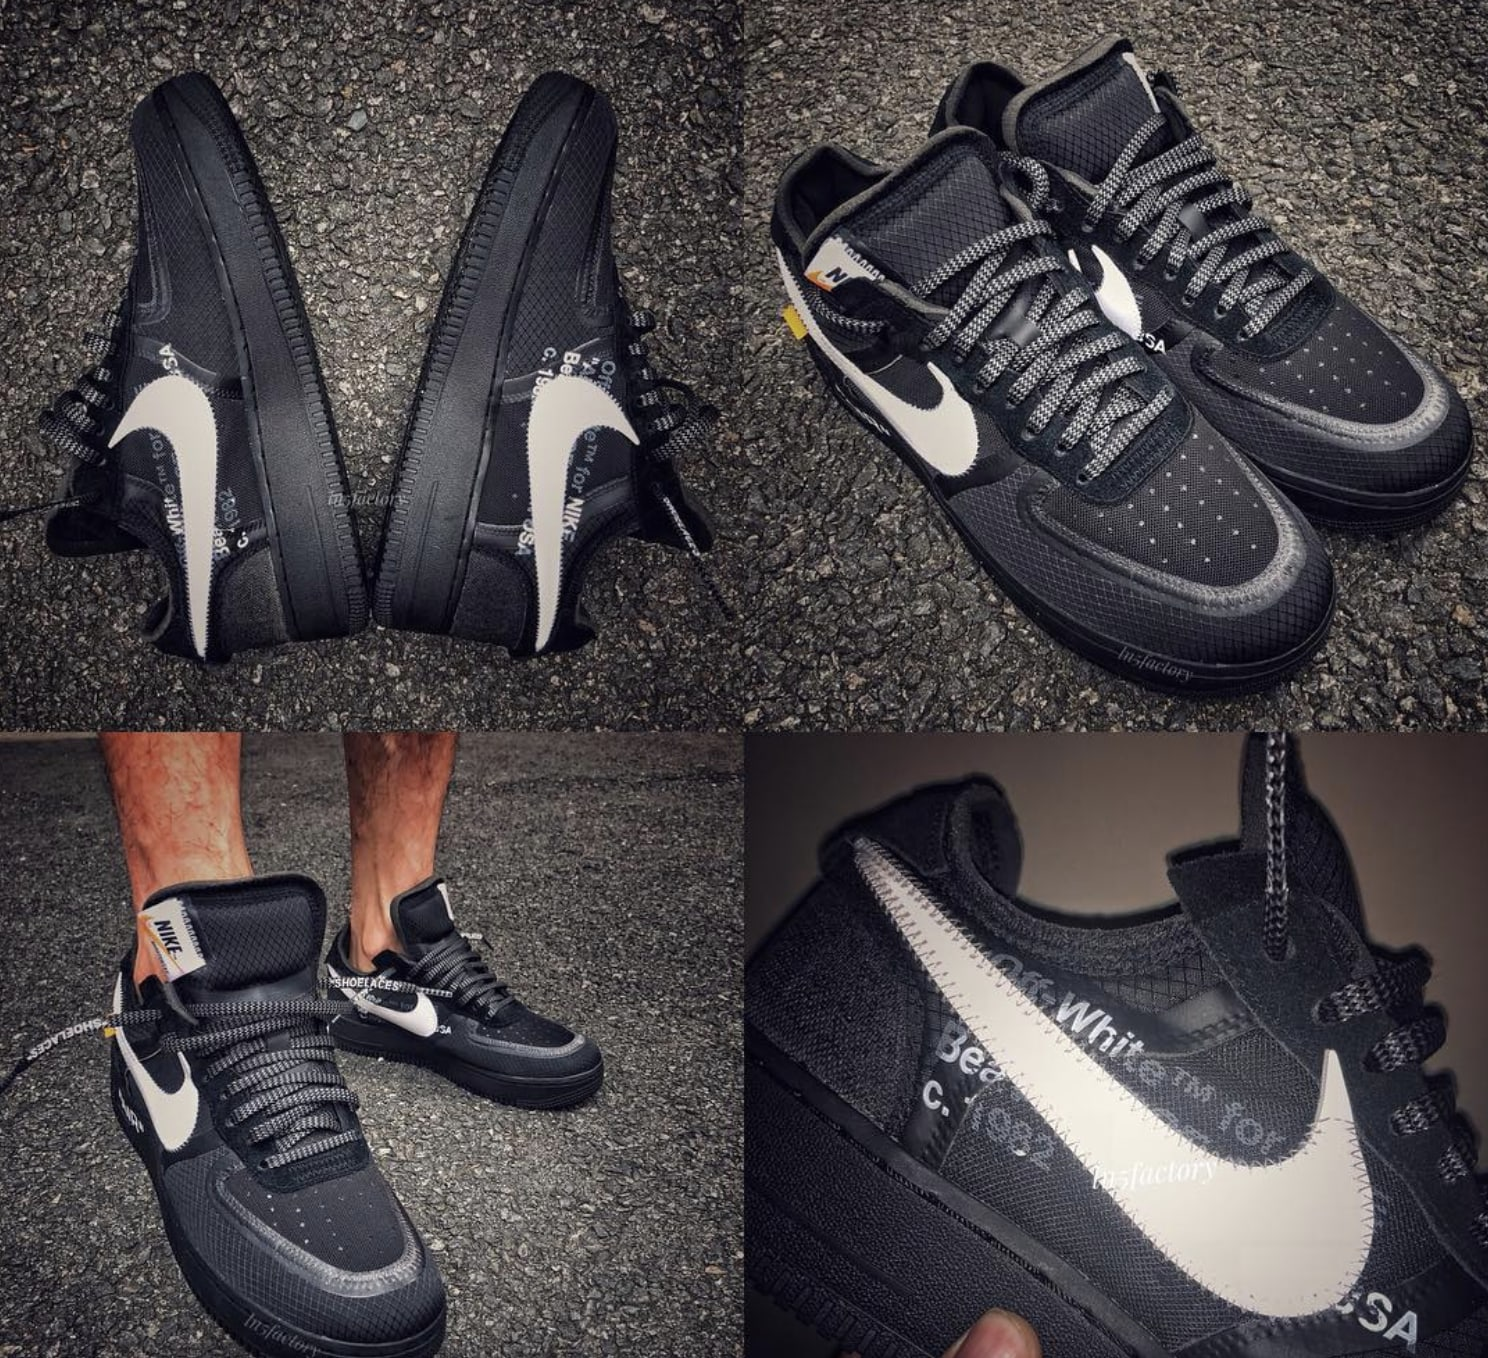 7d7f4f6be8e4 Off-White x Nike Air Force 1 Low Black White AO4606-001 Release Date ...